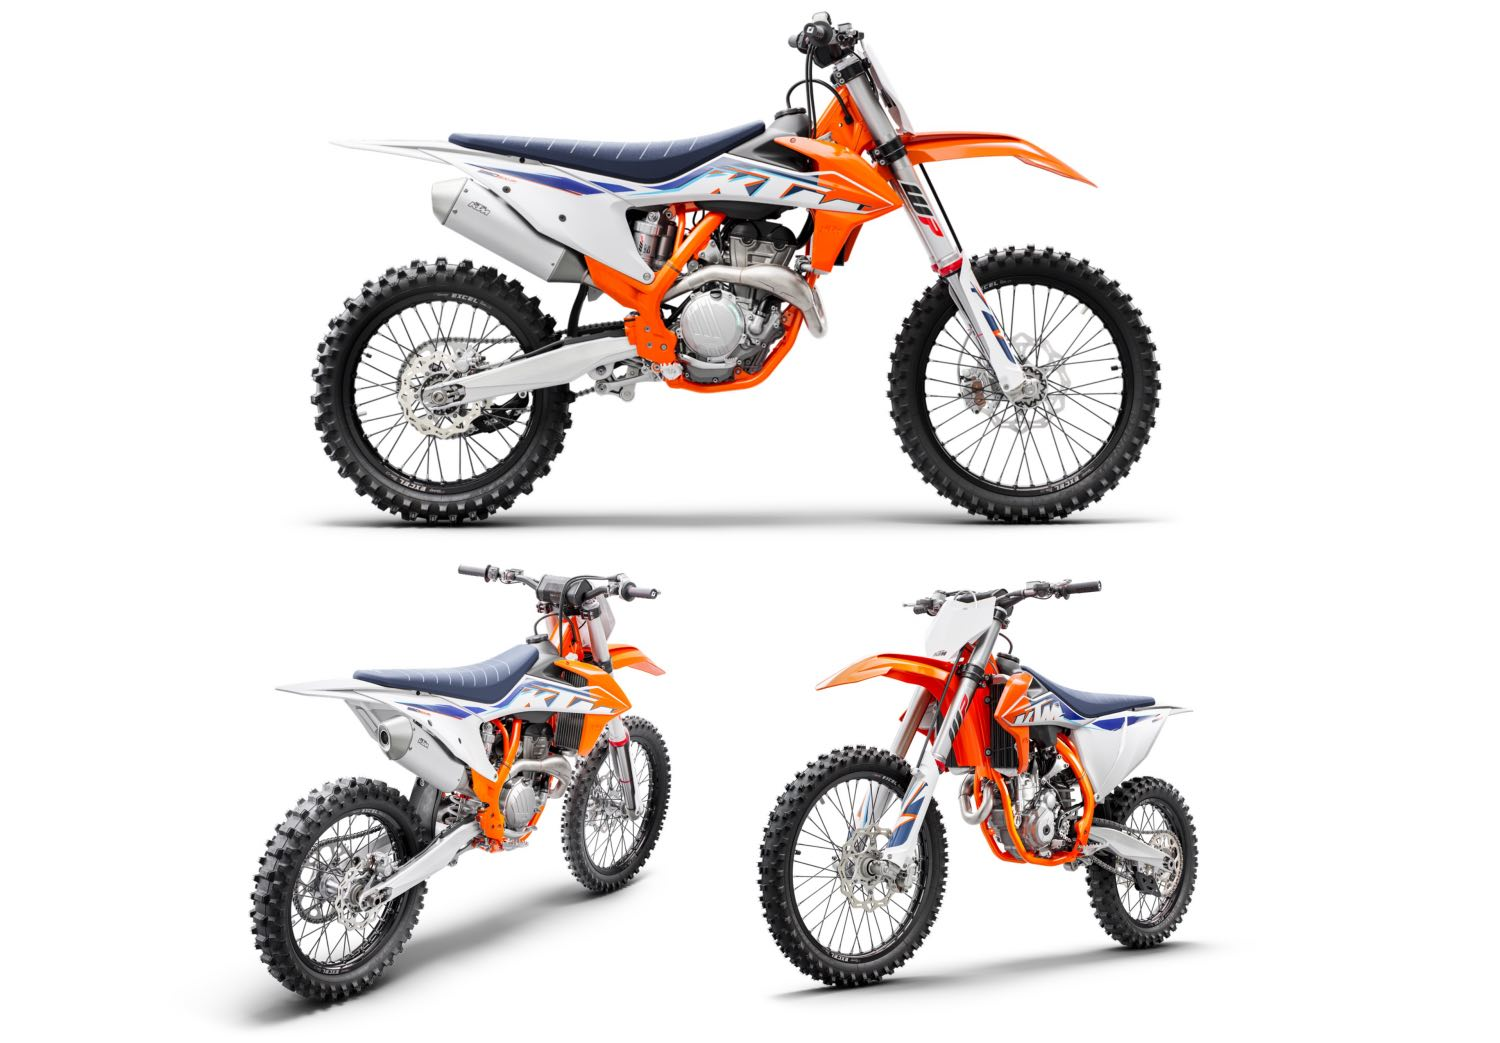 Introducing the 2022 KTM 350 SX-F